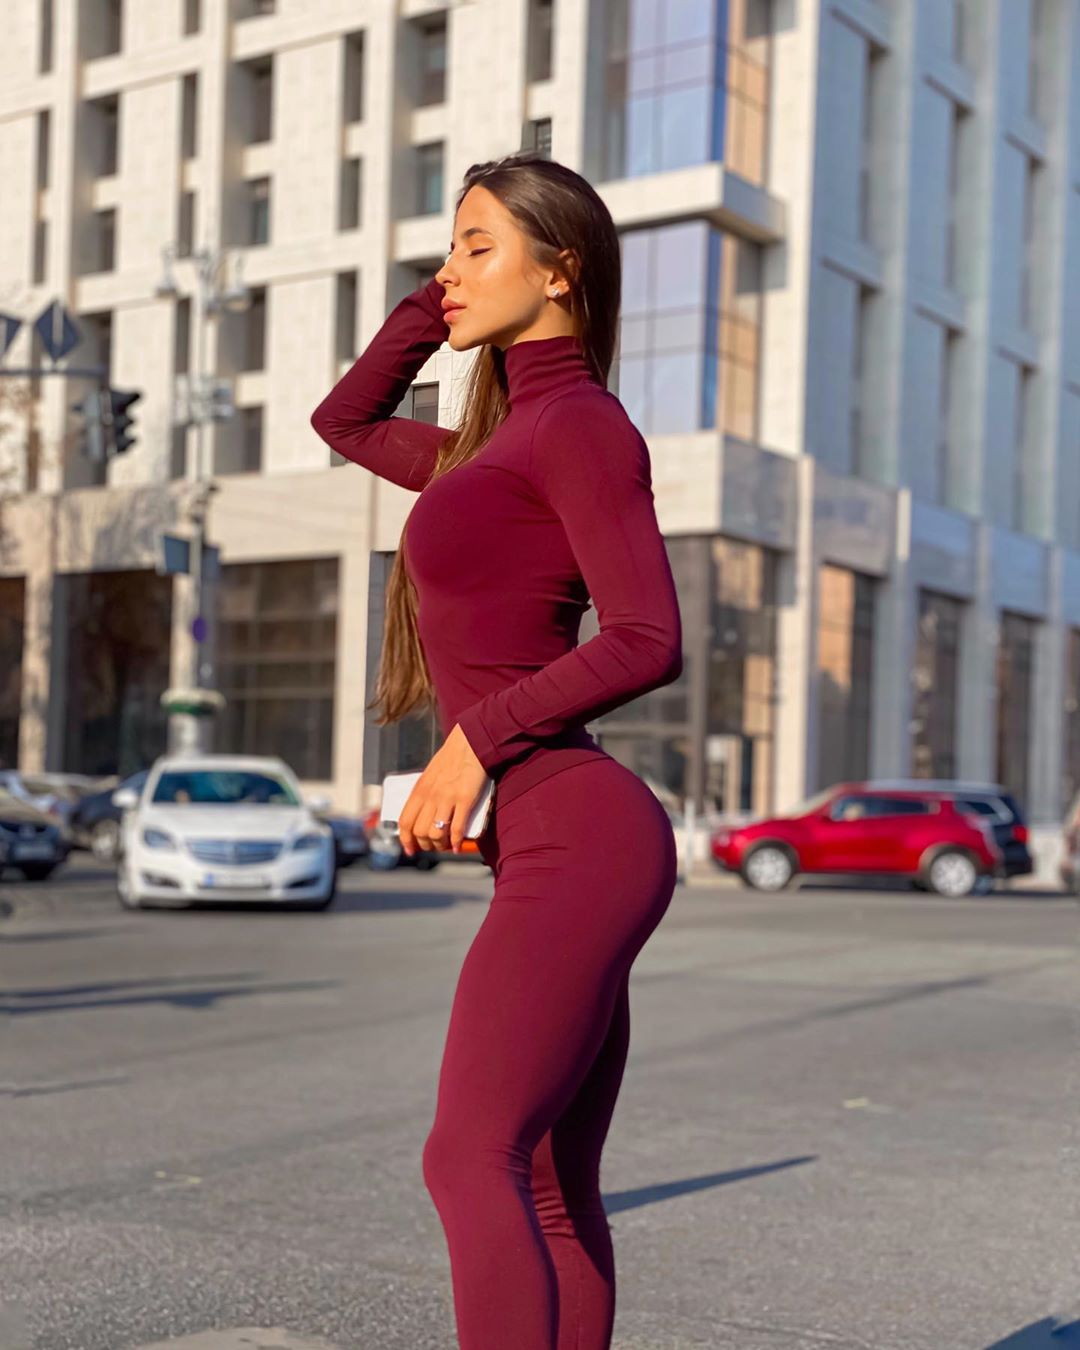 Olesia-Shevchuk-Wallpapers-Insta-Fit-Bio-1